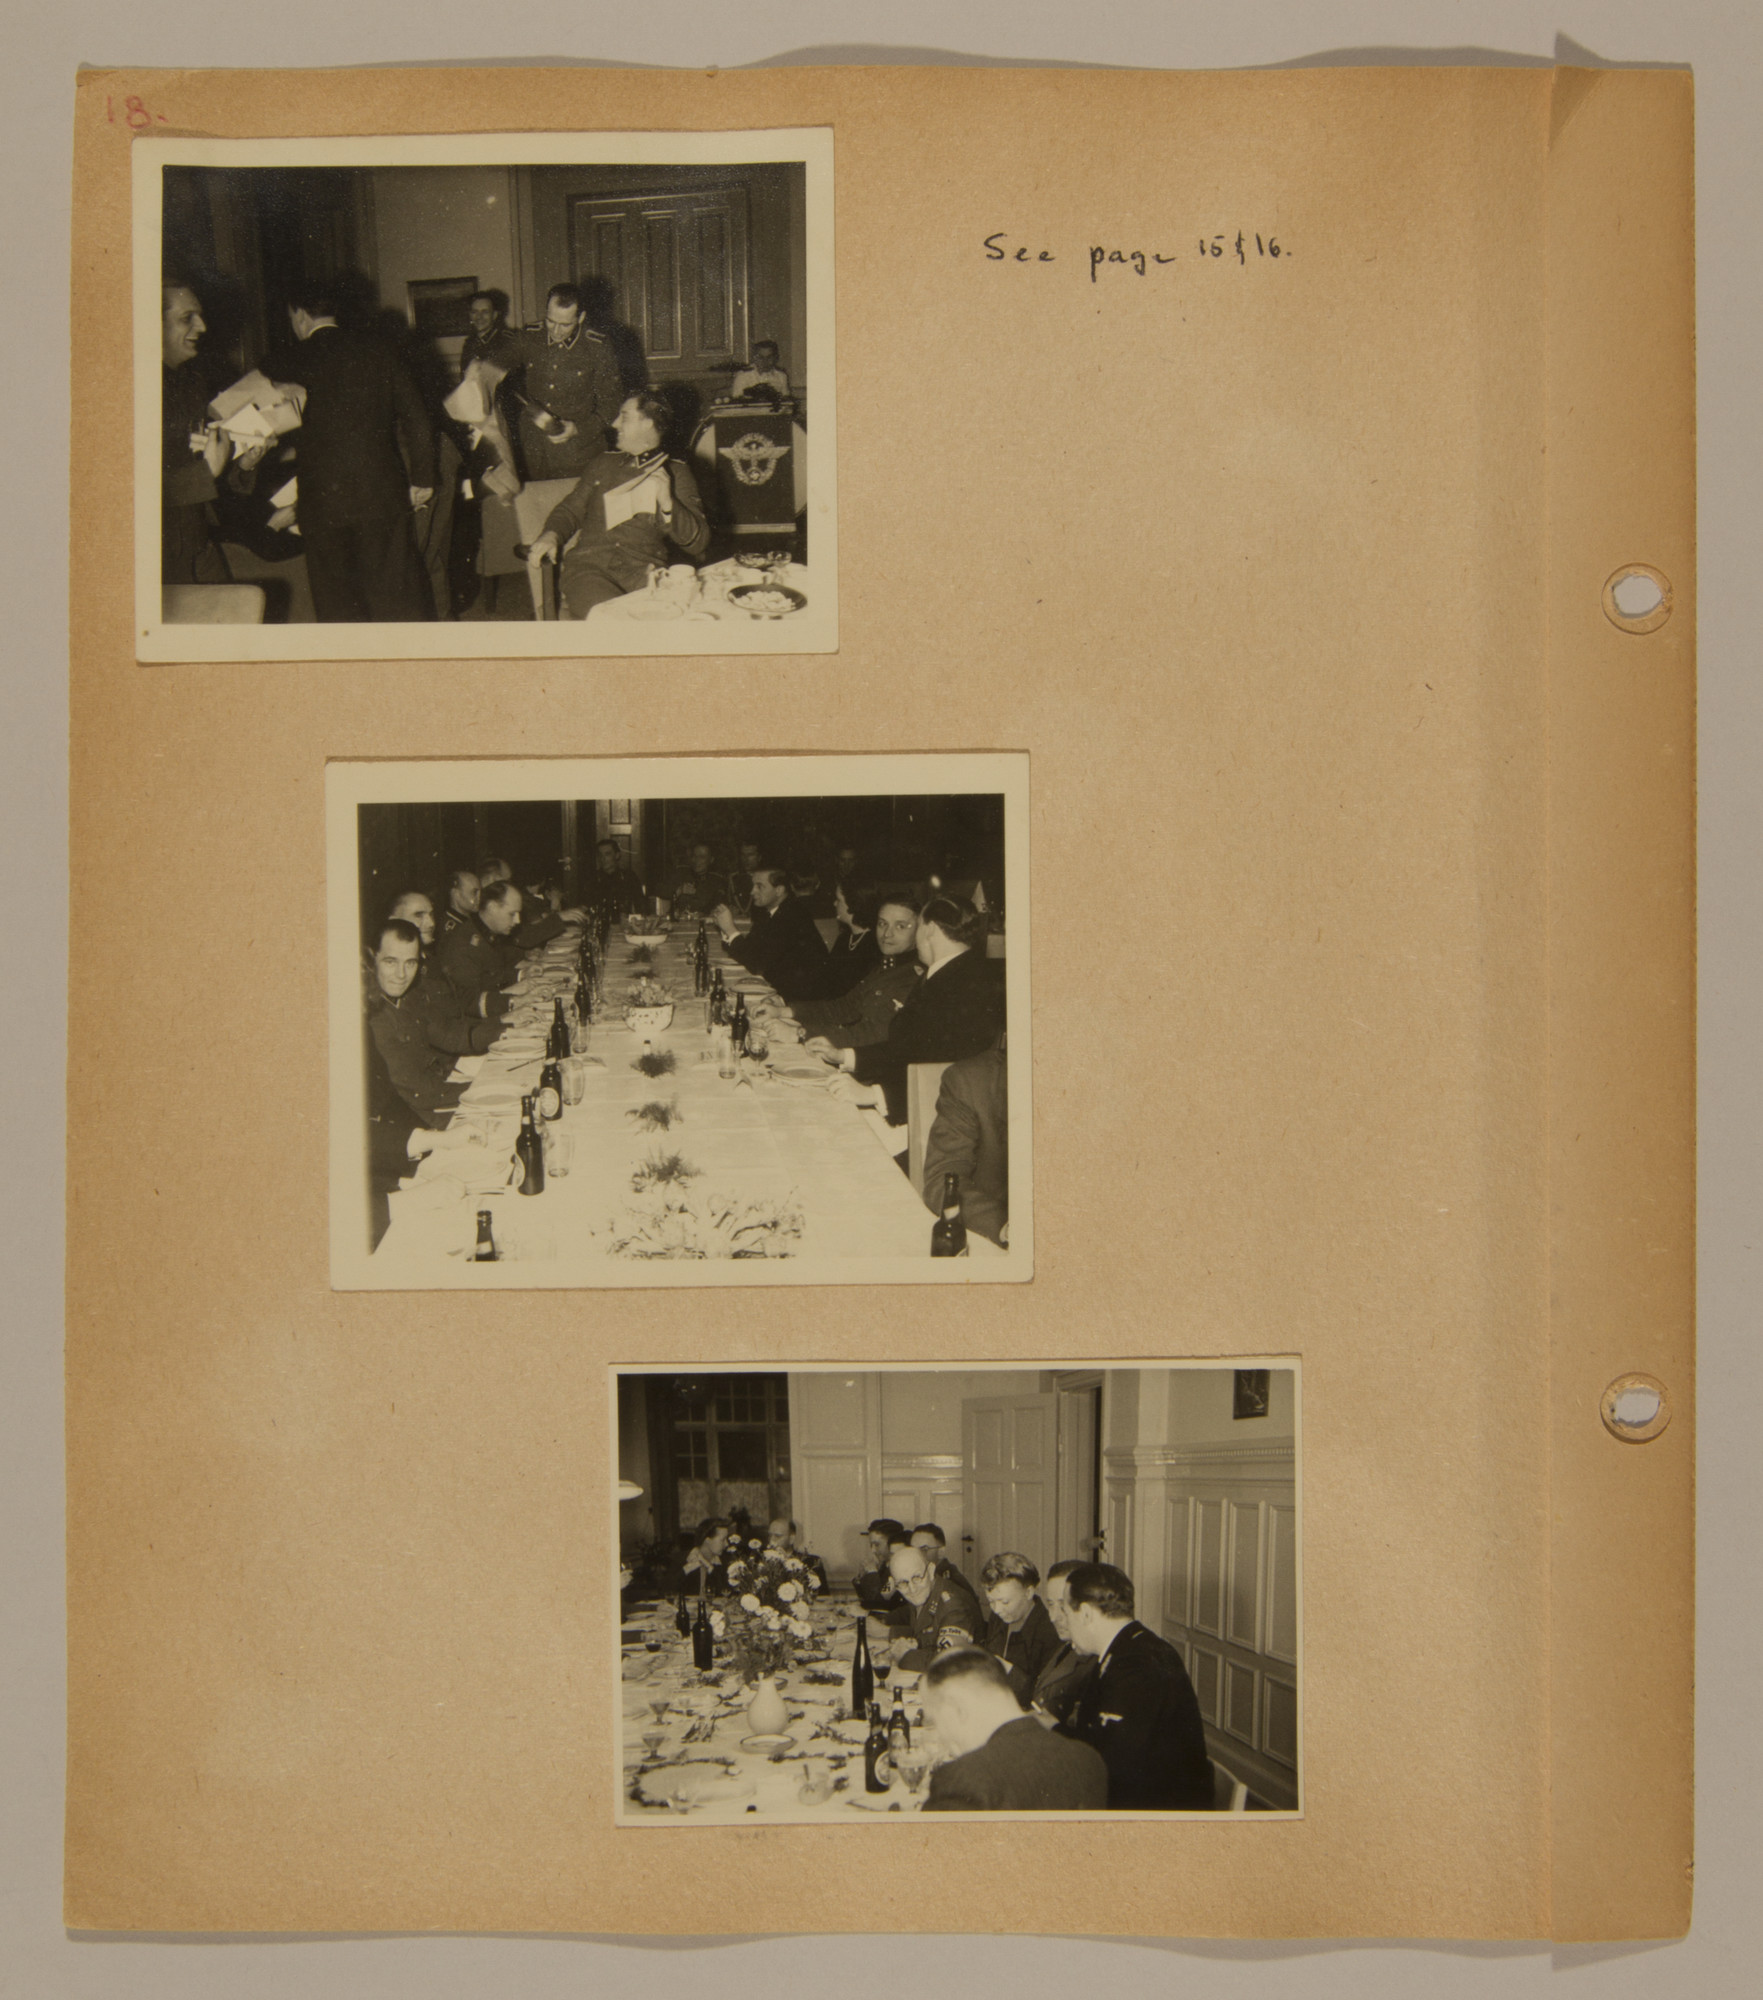 Page from volume three of a set of scrapbooks compiled by Bjorn Sibbern, a Danish policeman and resistance member, documenting the German occupation of Denmark.  This page contains photographs of a party for Walter Best, the German civil administrator in Denmark, taken by Bjorn Sibbern while using a forged press card with a false identity.